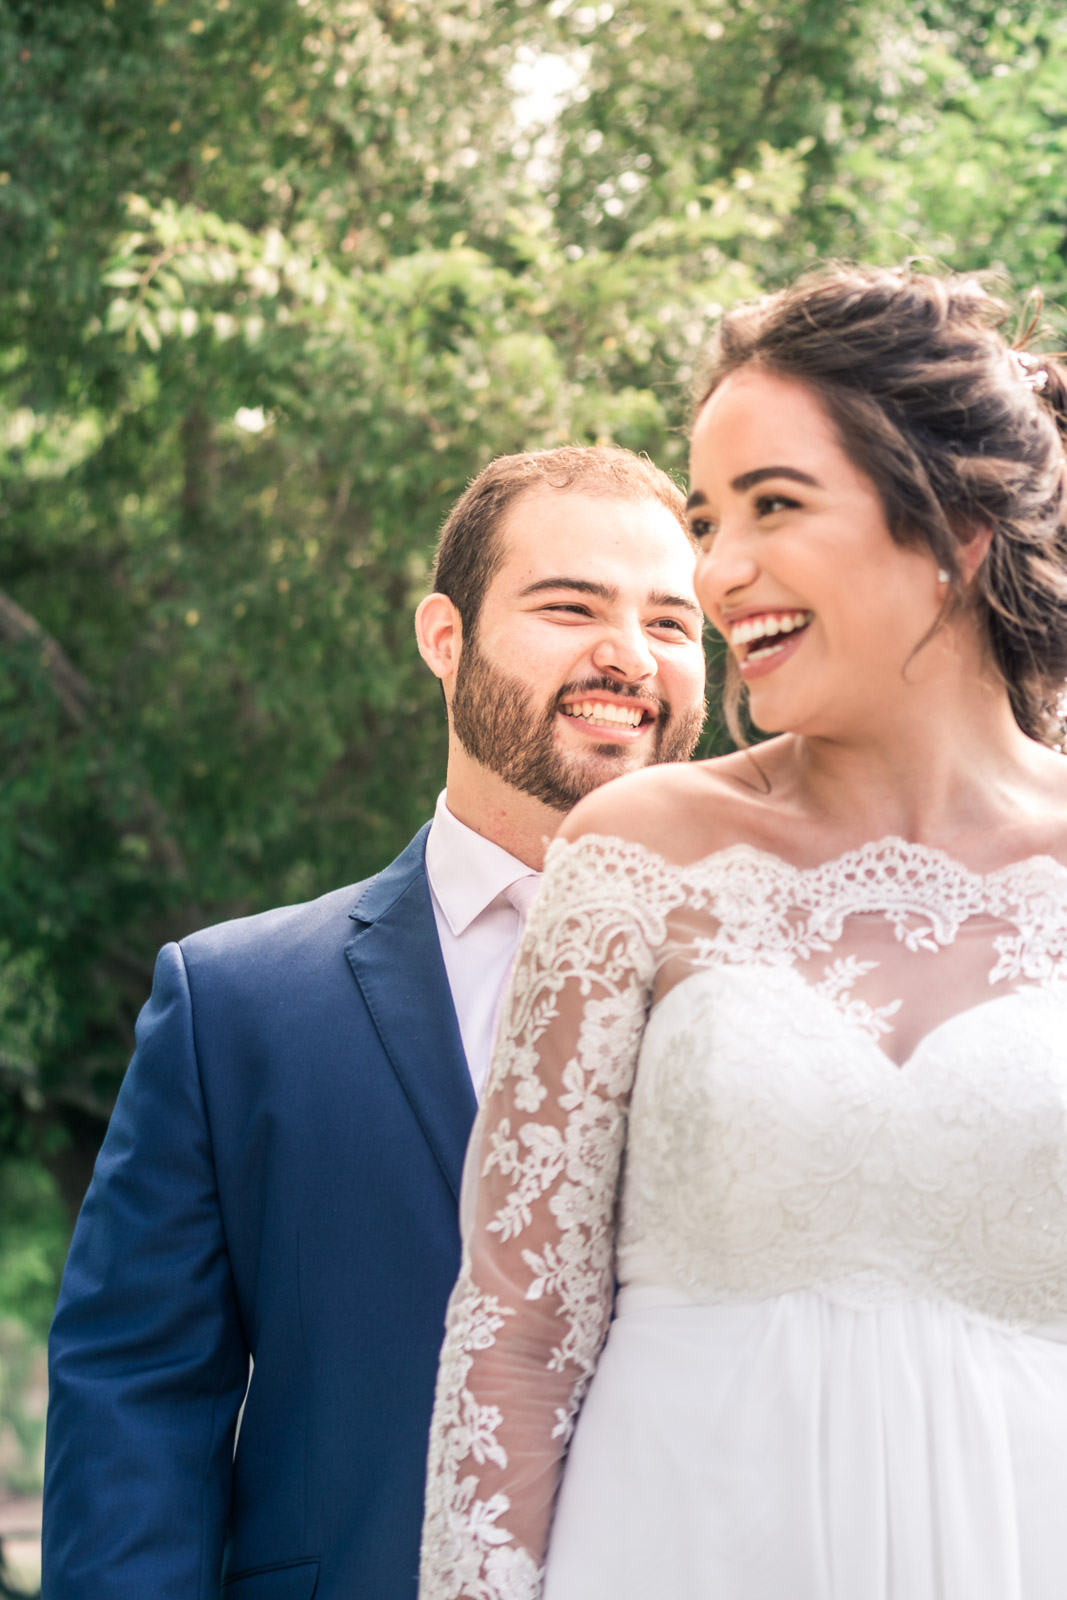 Portrait of the Bride and groom laughing and smiling   during the first book on their wedding day in Brea California